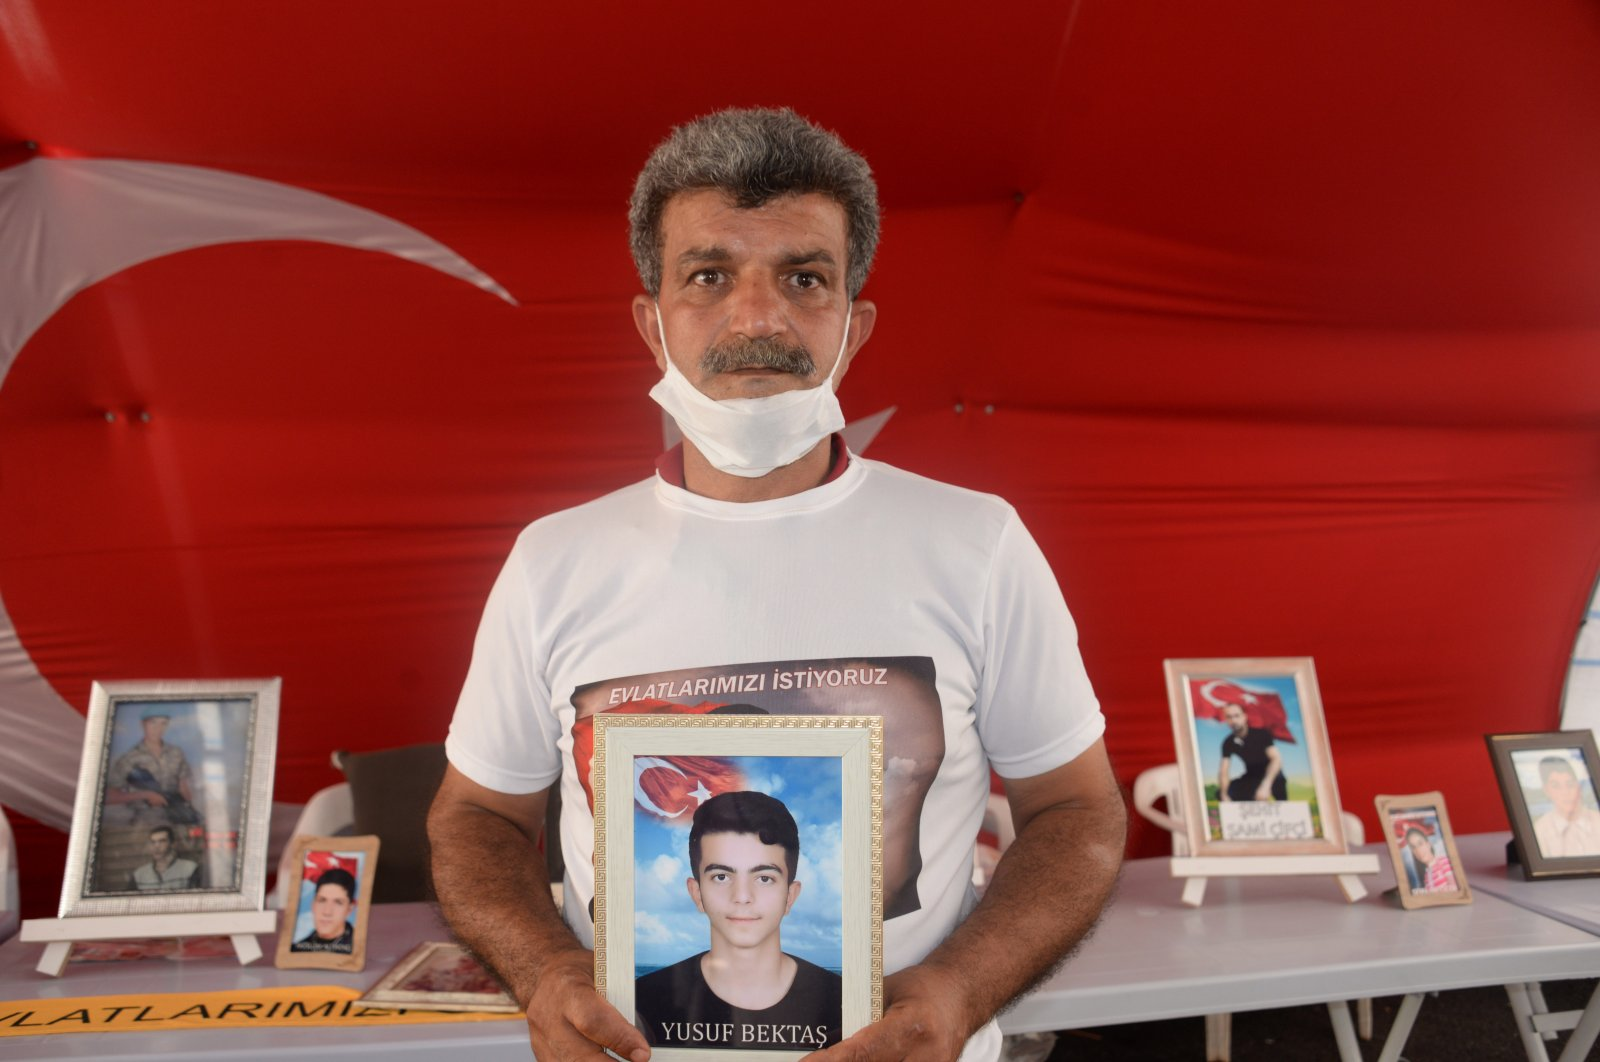 Father Celil Begdaş holds a picture of his son Yusuf in front of the Peoples' Democratic Party (HDP) headquarters in Diyarbakır, southeastern Turkey, July 31, 2020. (DHA Photo)